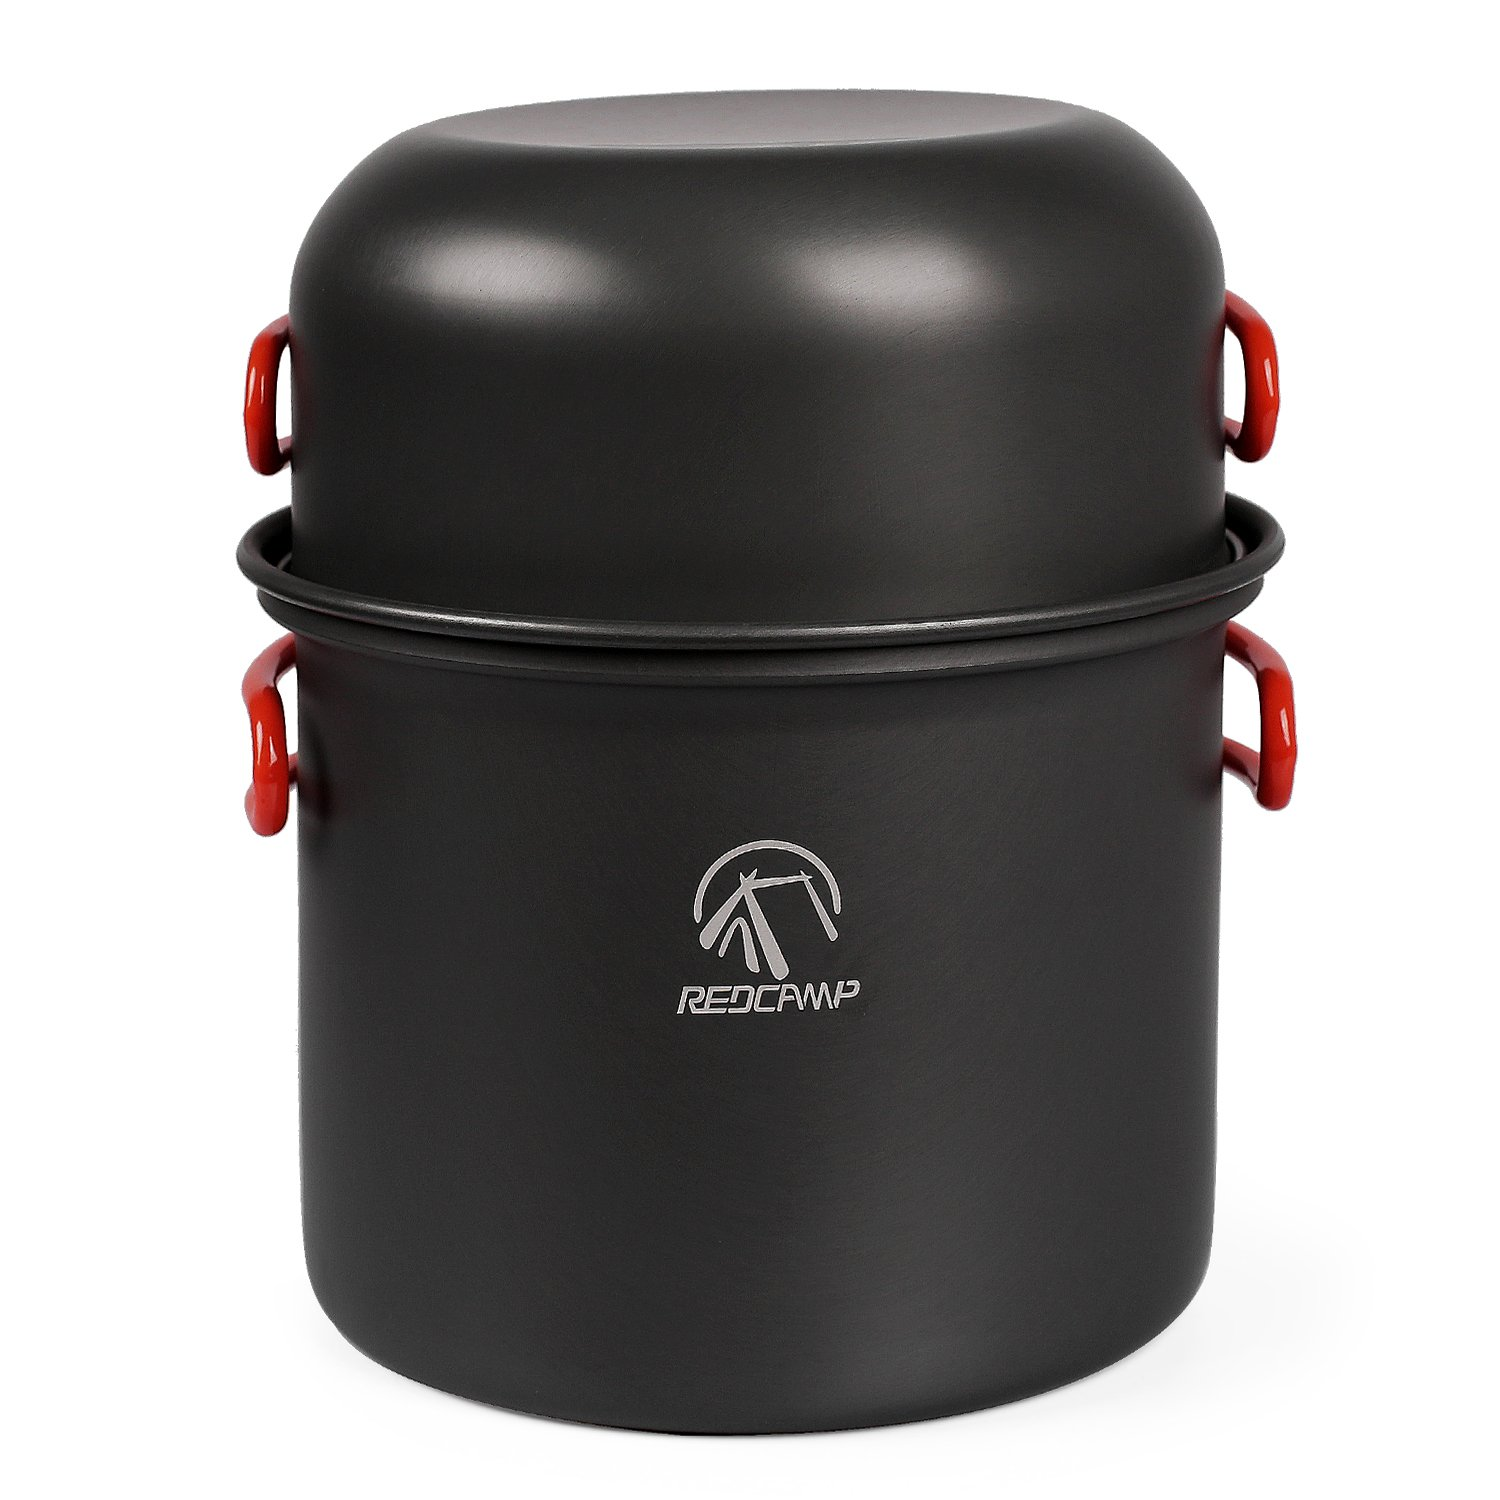 REDCAMP 9/12/18/23 PCS Camping Cookware Mess Kit, Aluminum Lightweight Folding Camping Pots and Pans Set for 1/2/3/4 Person, FDA Approved